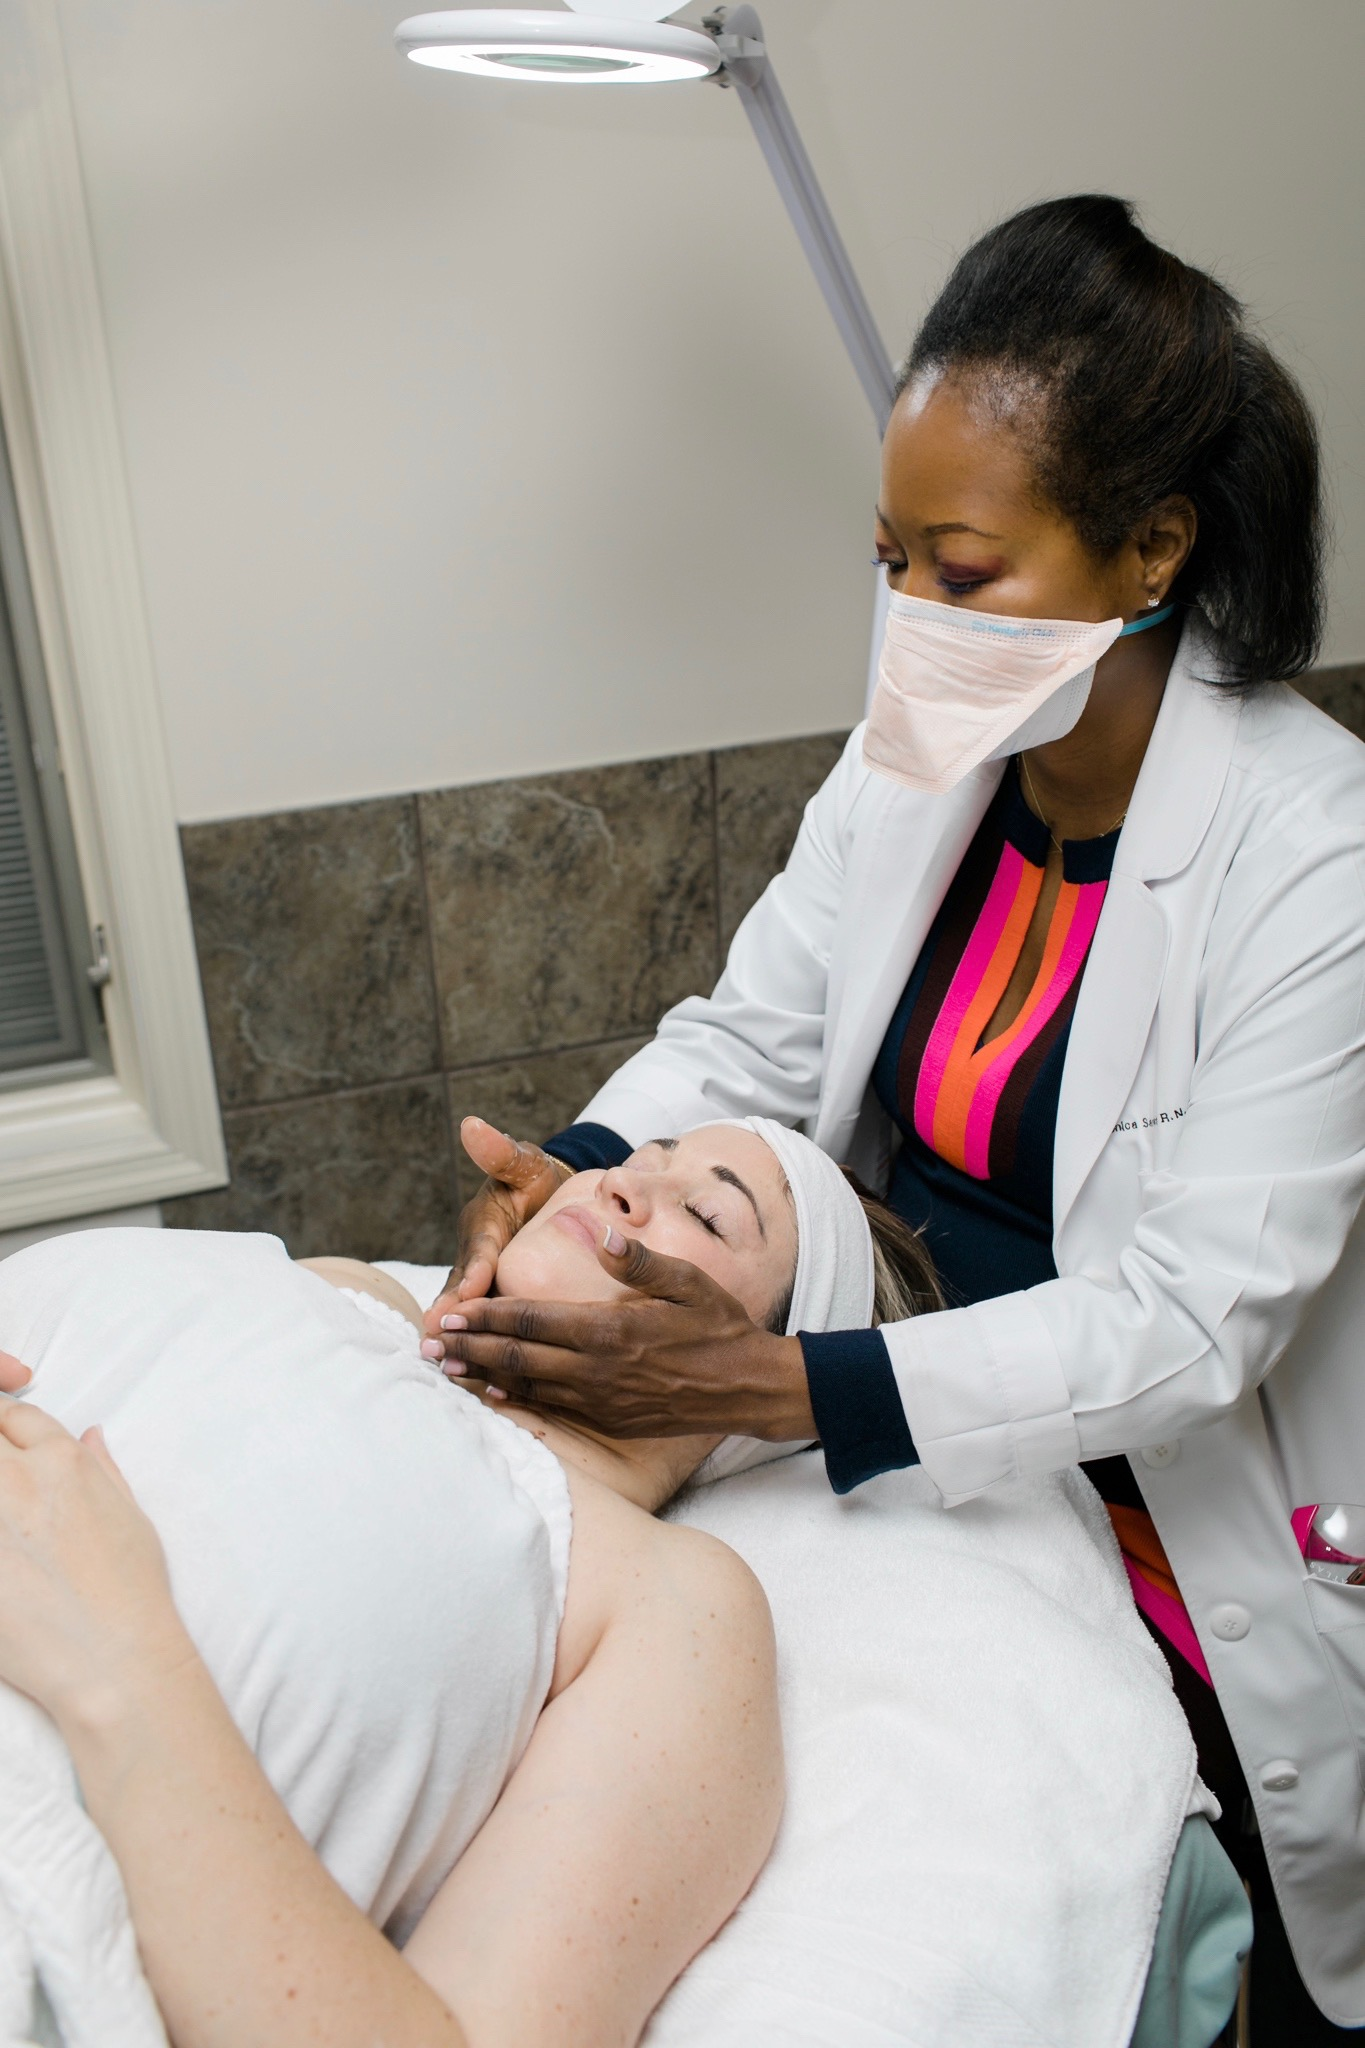 Medical Spa Treatments While Pregnant: What is Safe? Tips featured by top Memphis beauty blogger, Walking in Memphis in High Heels.